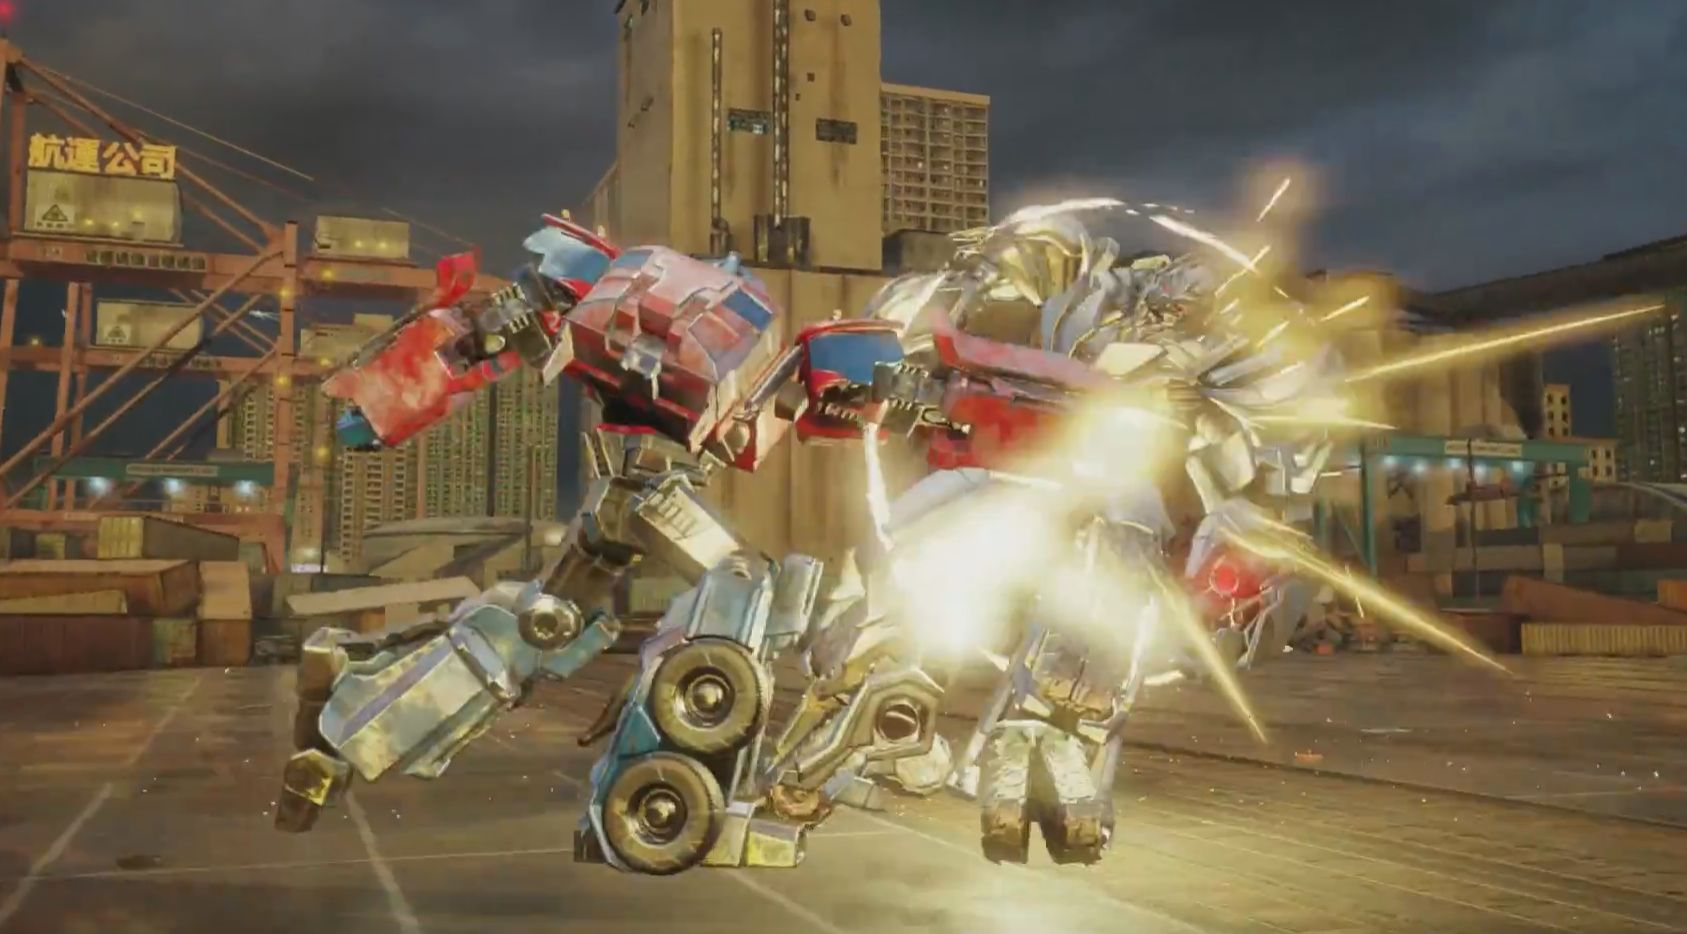 Modojo | Transformers: Forged to Fight is a Fighting Game/RPG Hybrid Coming to Mobile Platforms